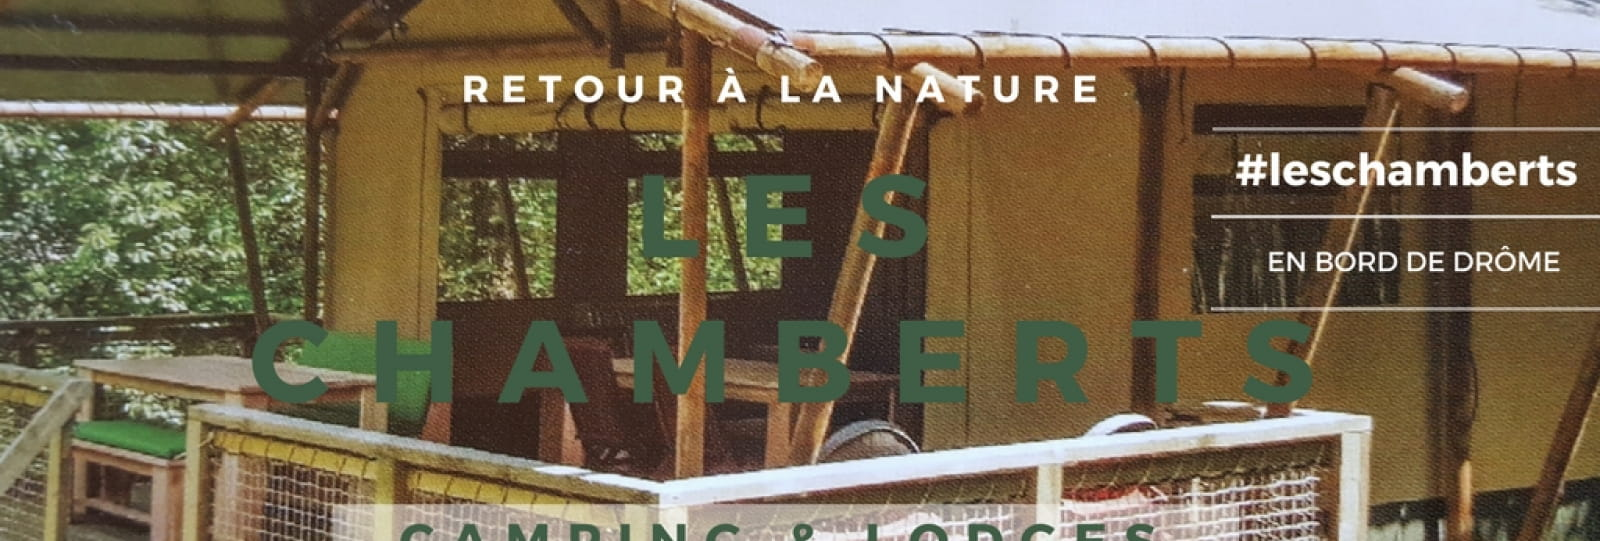 Les Chamberts, Camping et Lodges